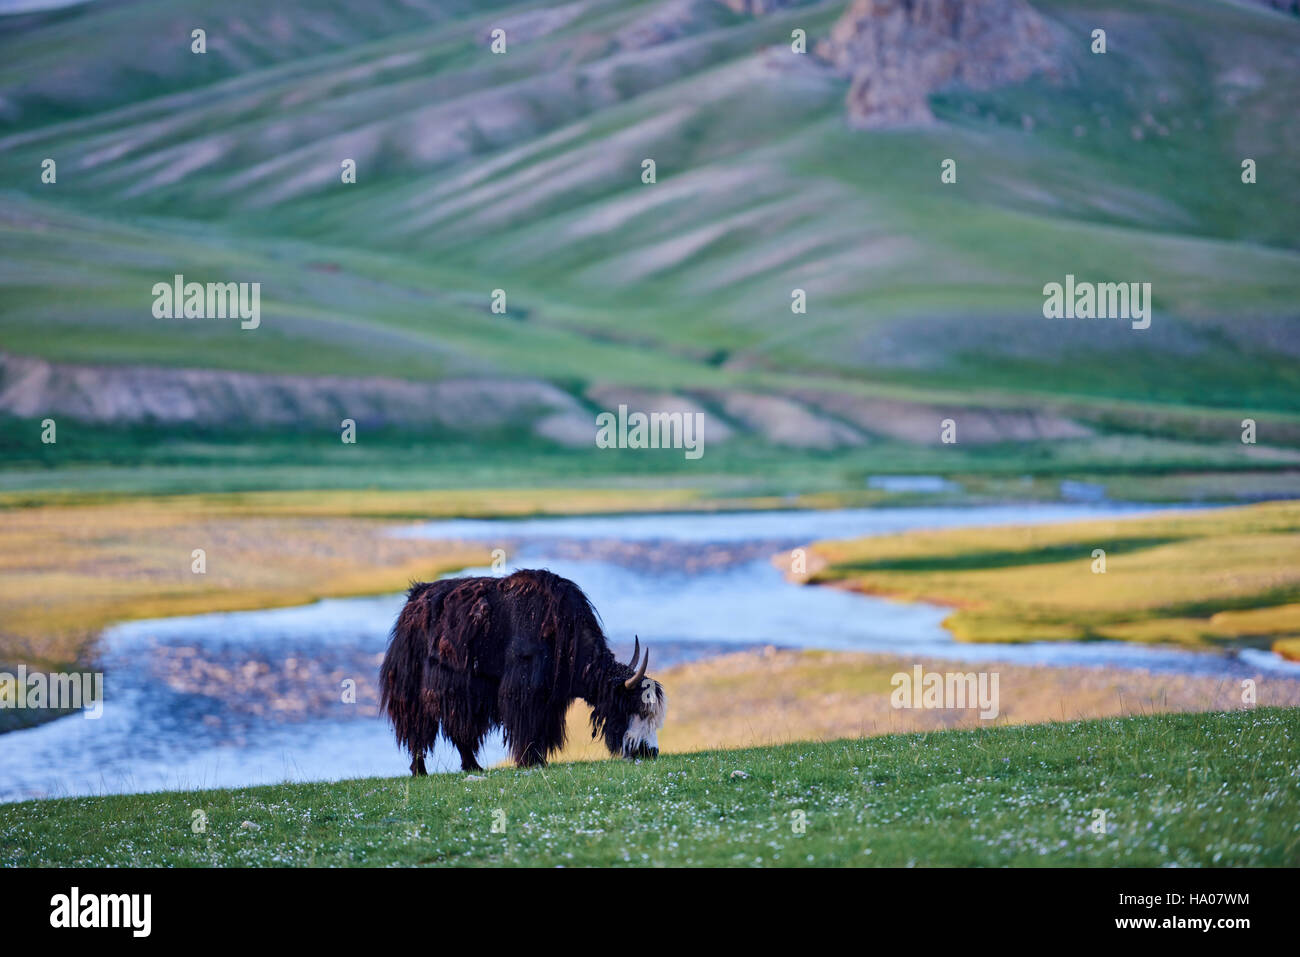 Mongolia, Bayankhongor province, an yak in the steppe - Stock Image